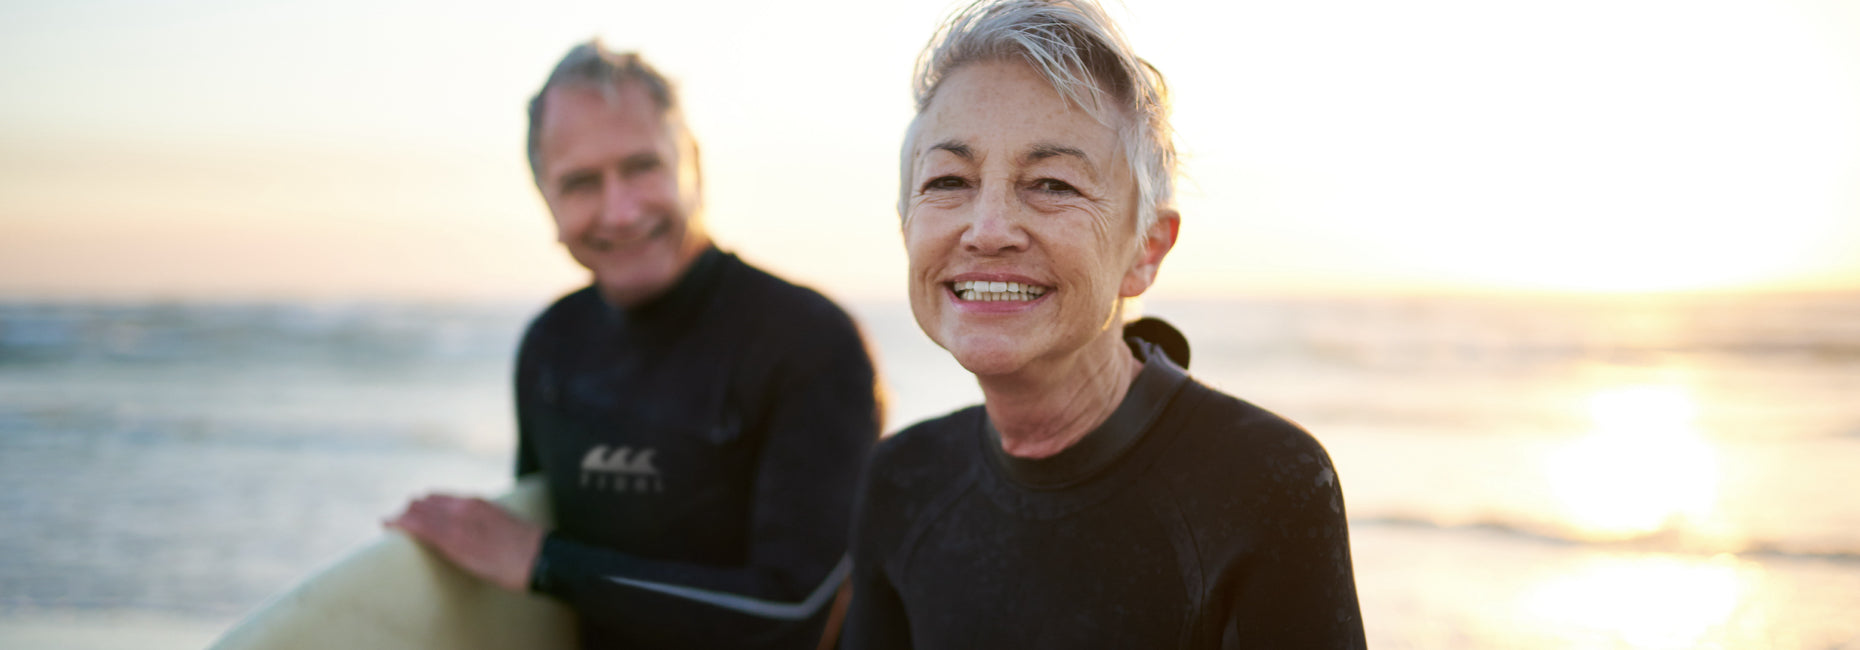 The Science of Healthy Aging